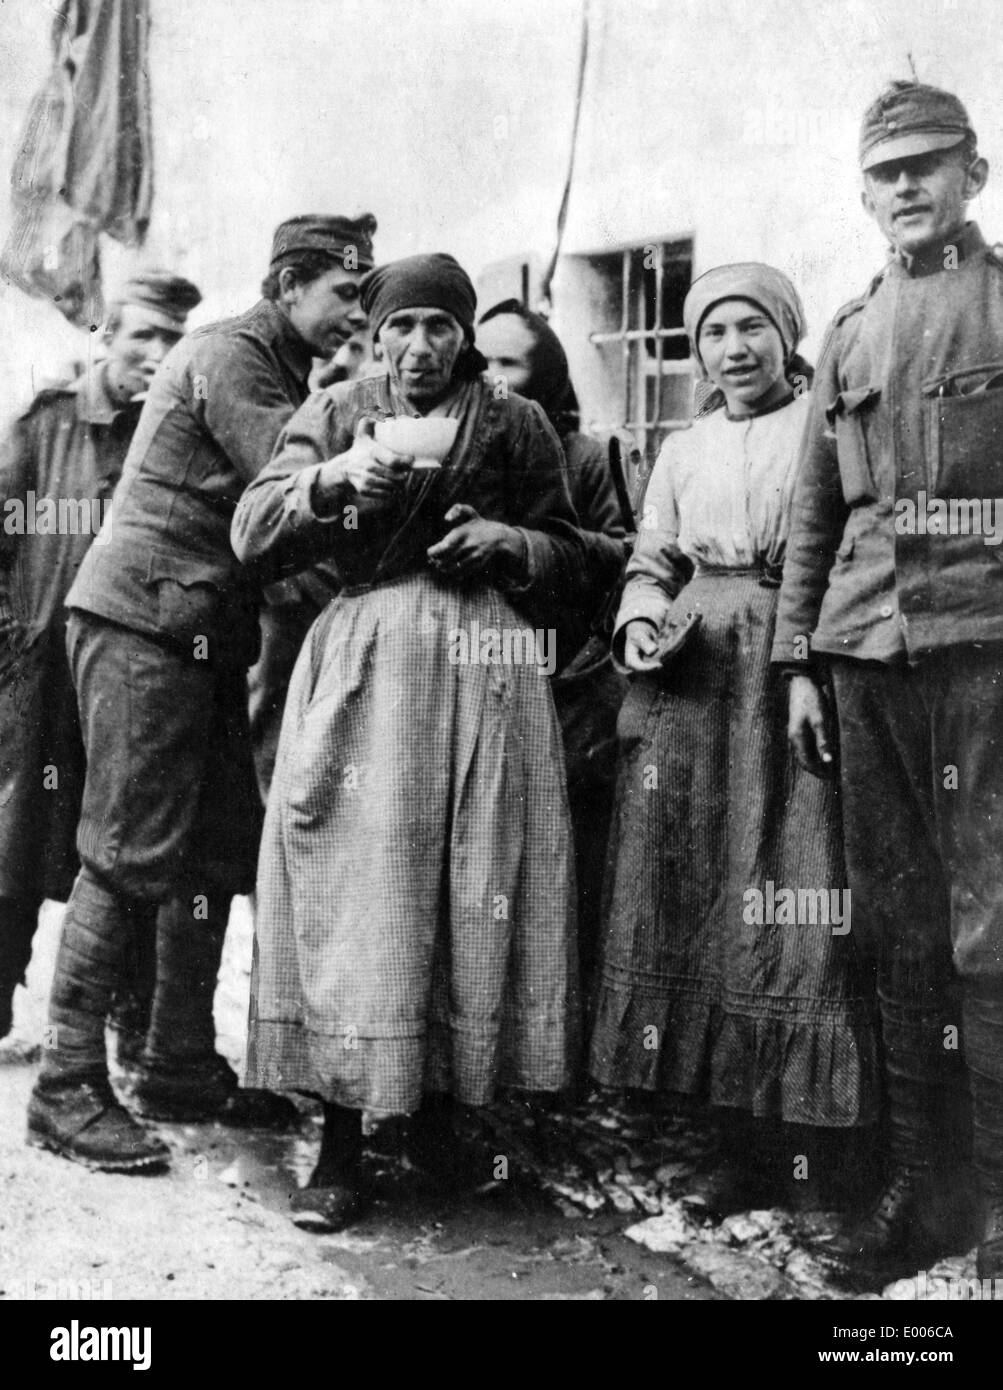 Food for the local Venetians, 1917 Stock Photo